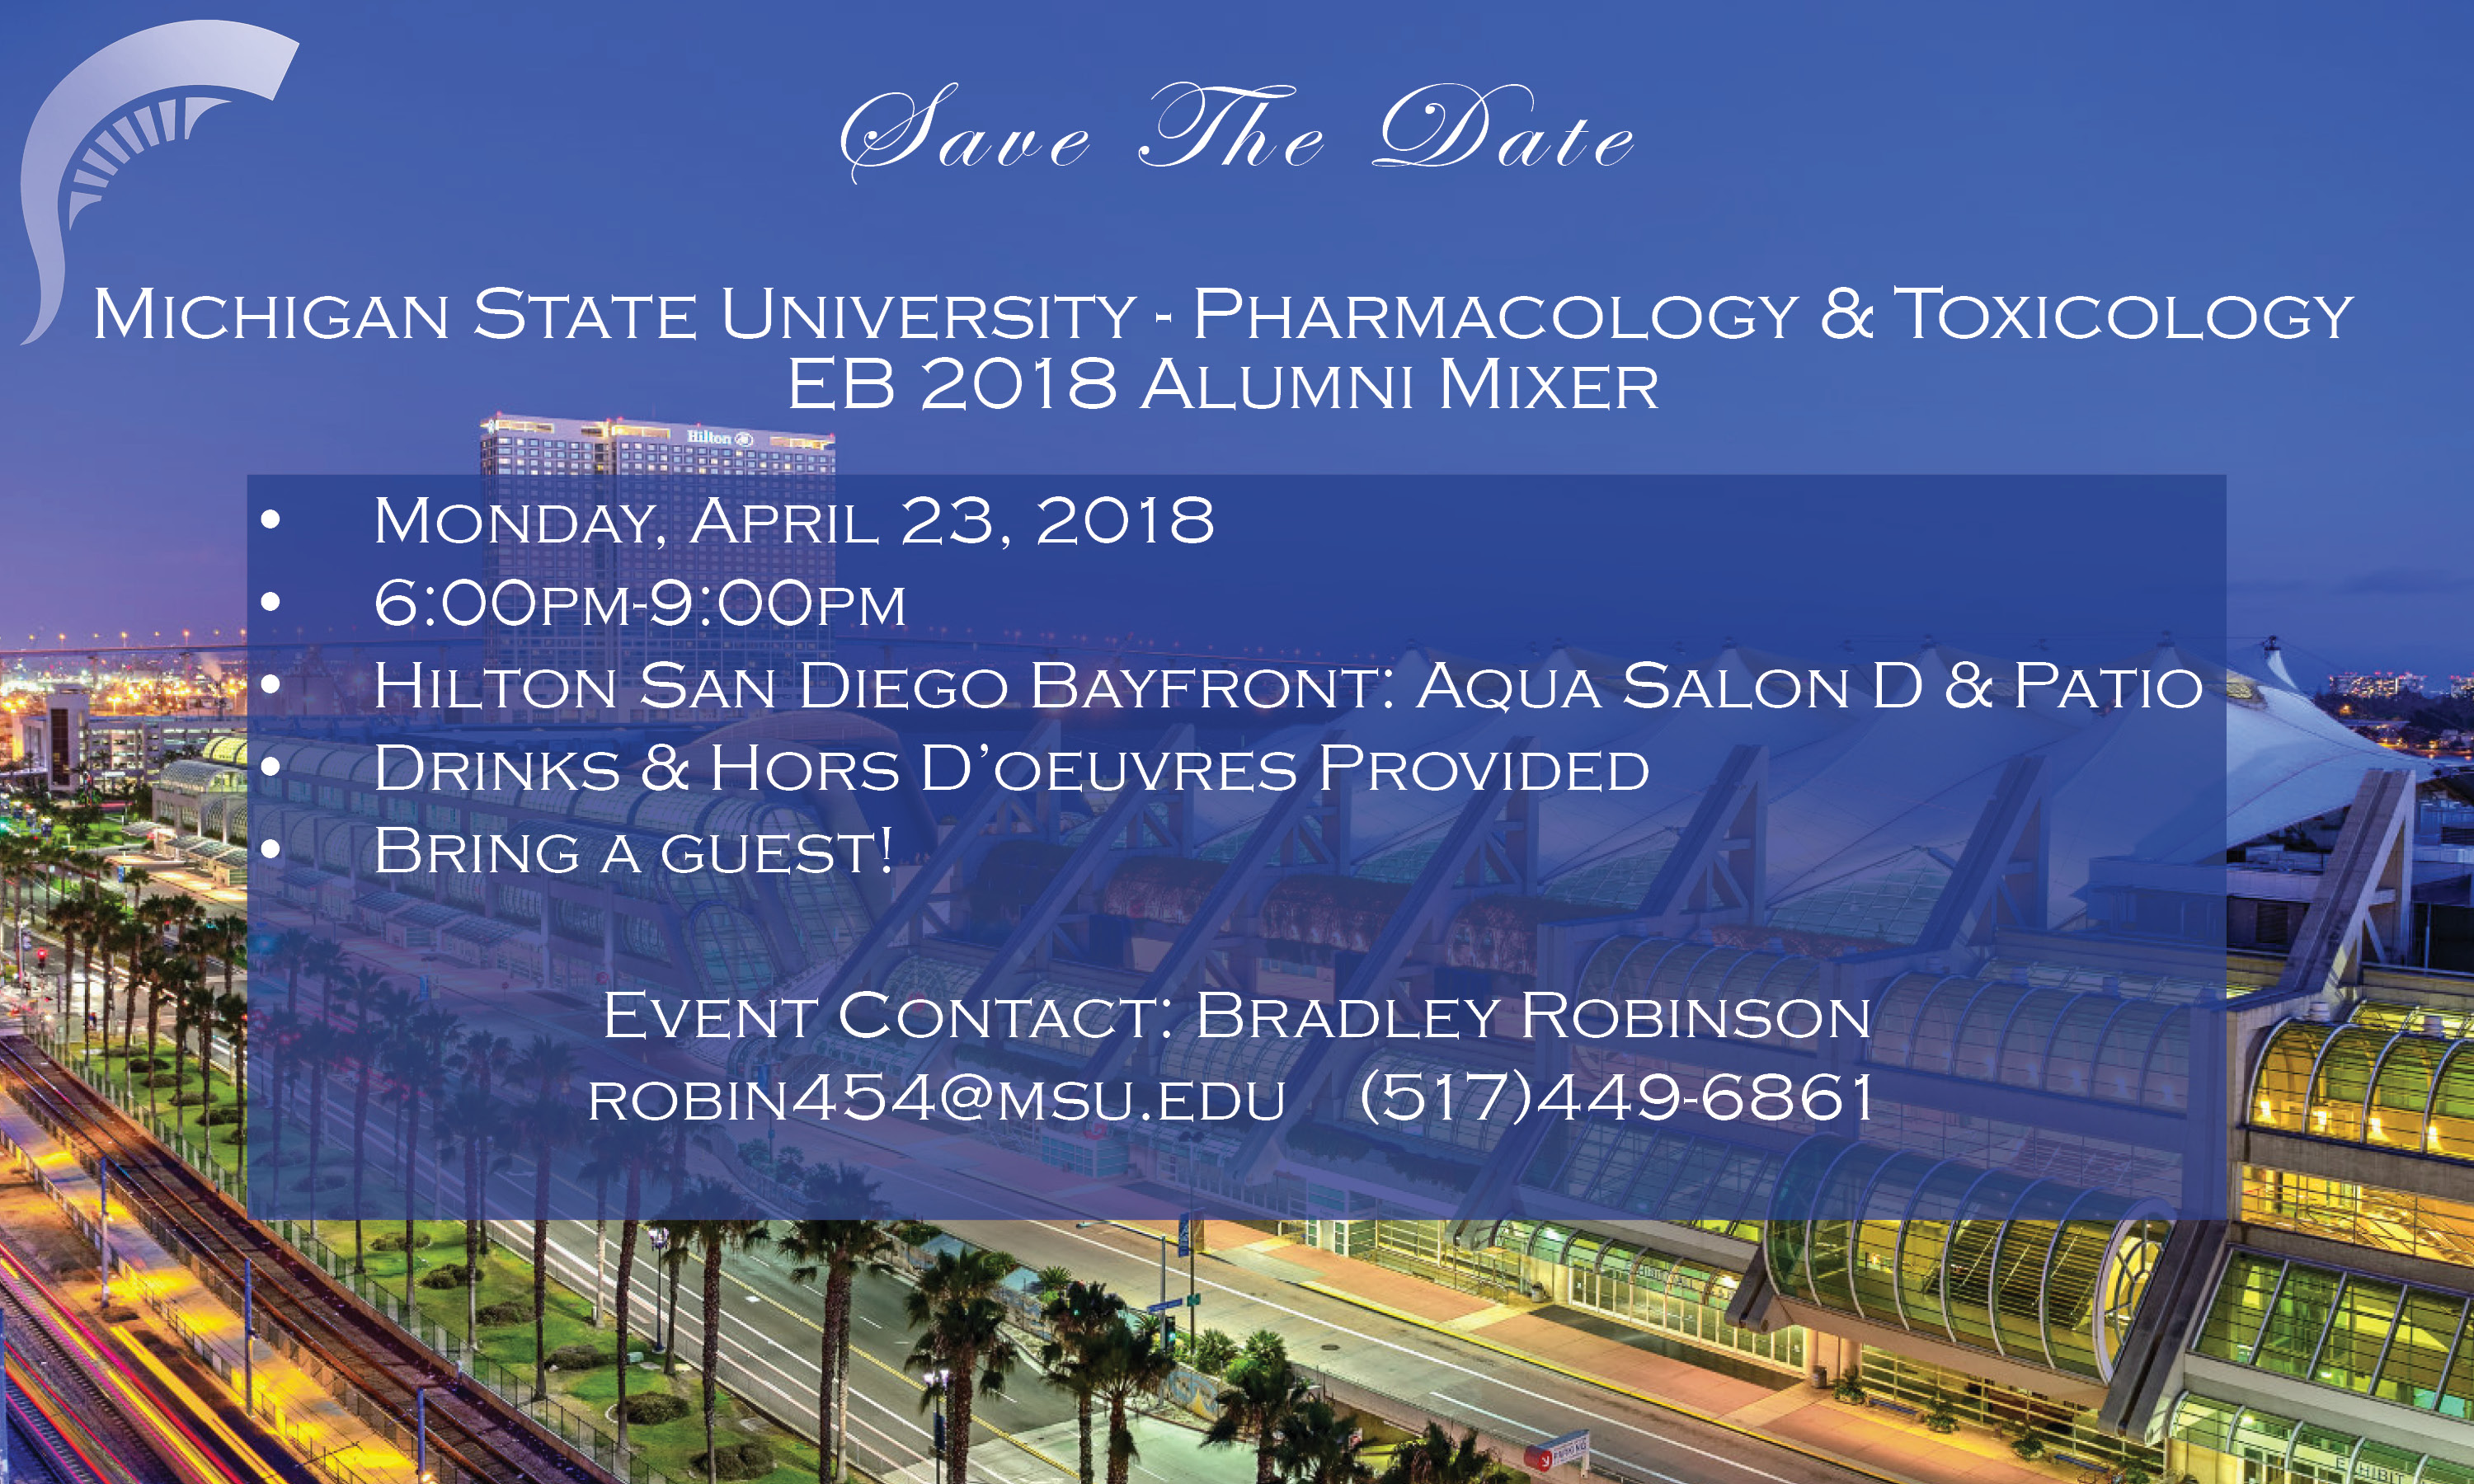 Picture shows Pharmacology & Toxicology Alumni Mixer Details shown on a picture of San Diego Convention Center